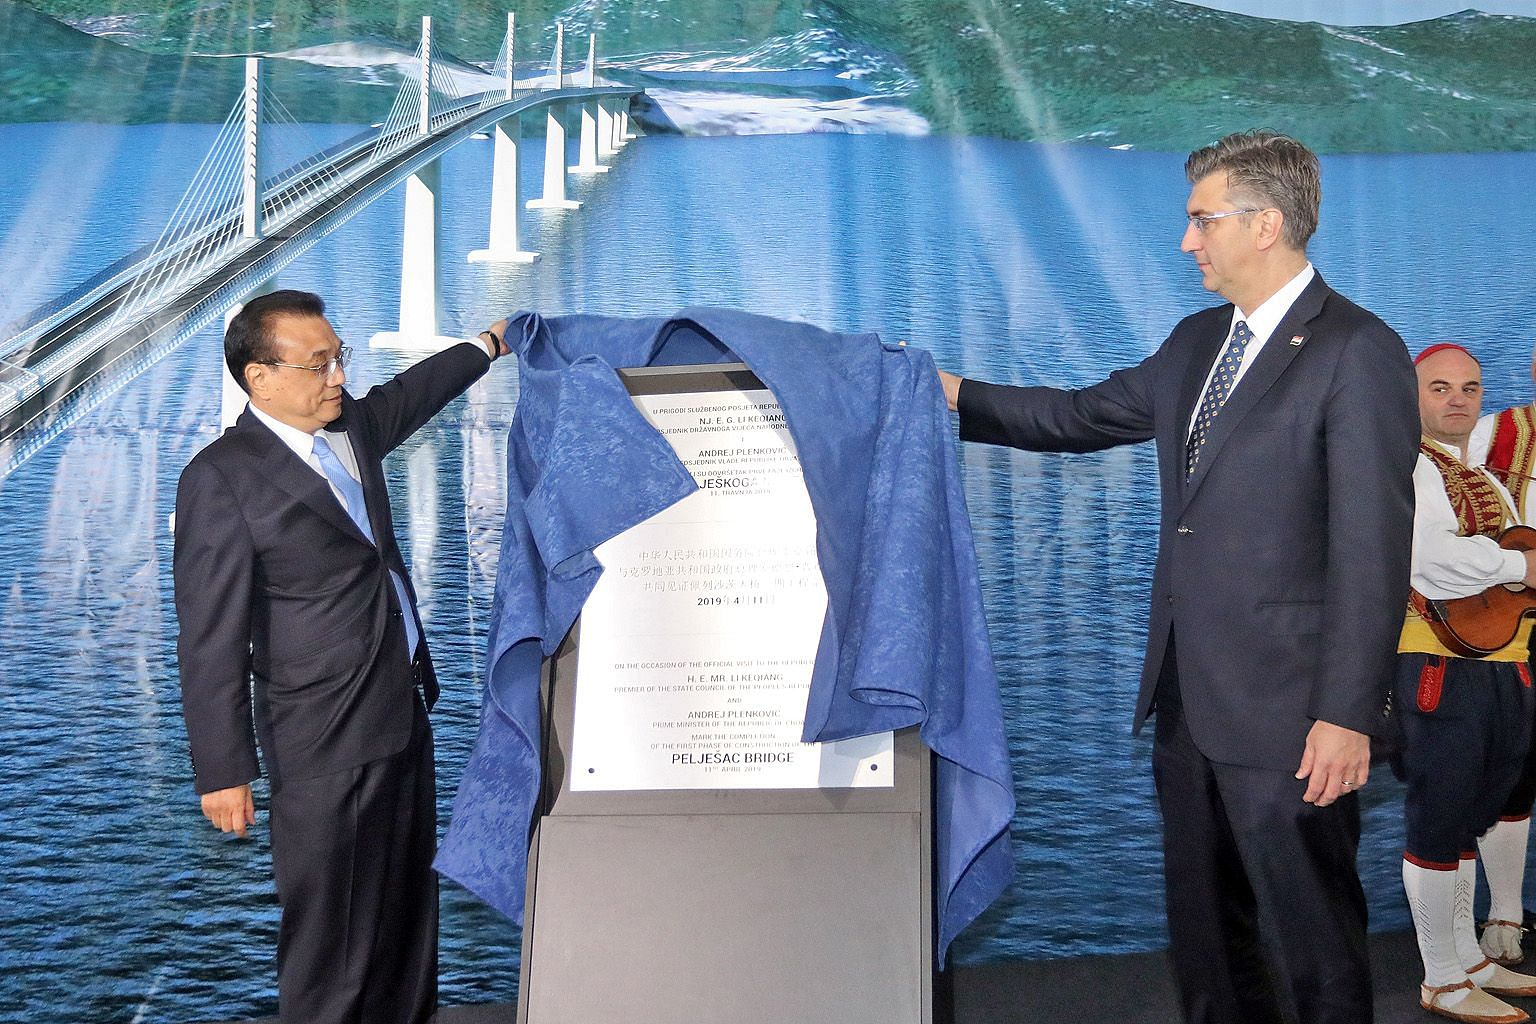 Chinese Premier Li Keqiang and Croatian Prime Minister Andrej Plenkovic unveiling a plaque to mark the completion of the first phase of construction of the Peljesac Bridge, which is being built by a Chinese company, in Brijesta, Croatia, on Thursday.